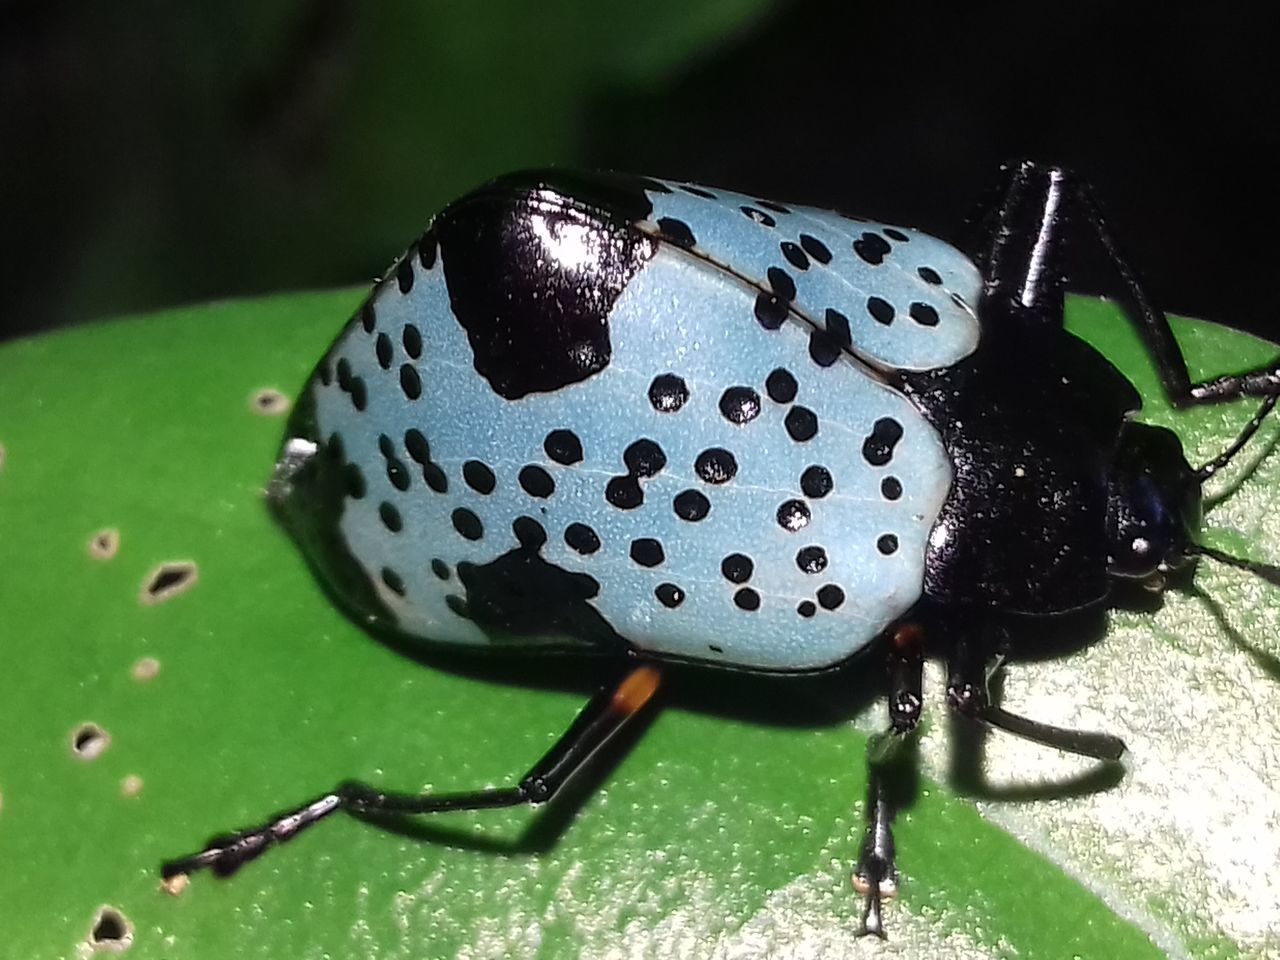 insect, animal themes, close-up, animals in the wild, one animal, no people, spotted, green color, ladybug, day, outdoors, nature